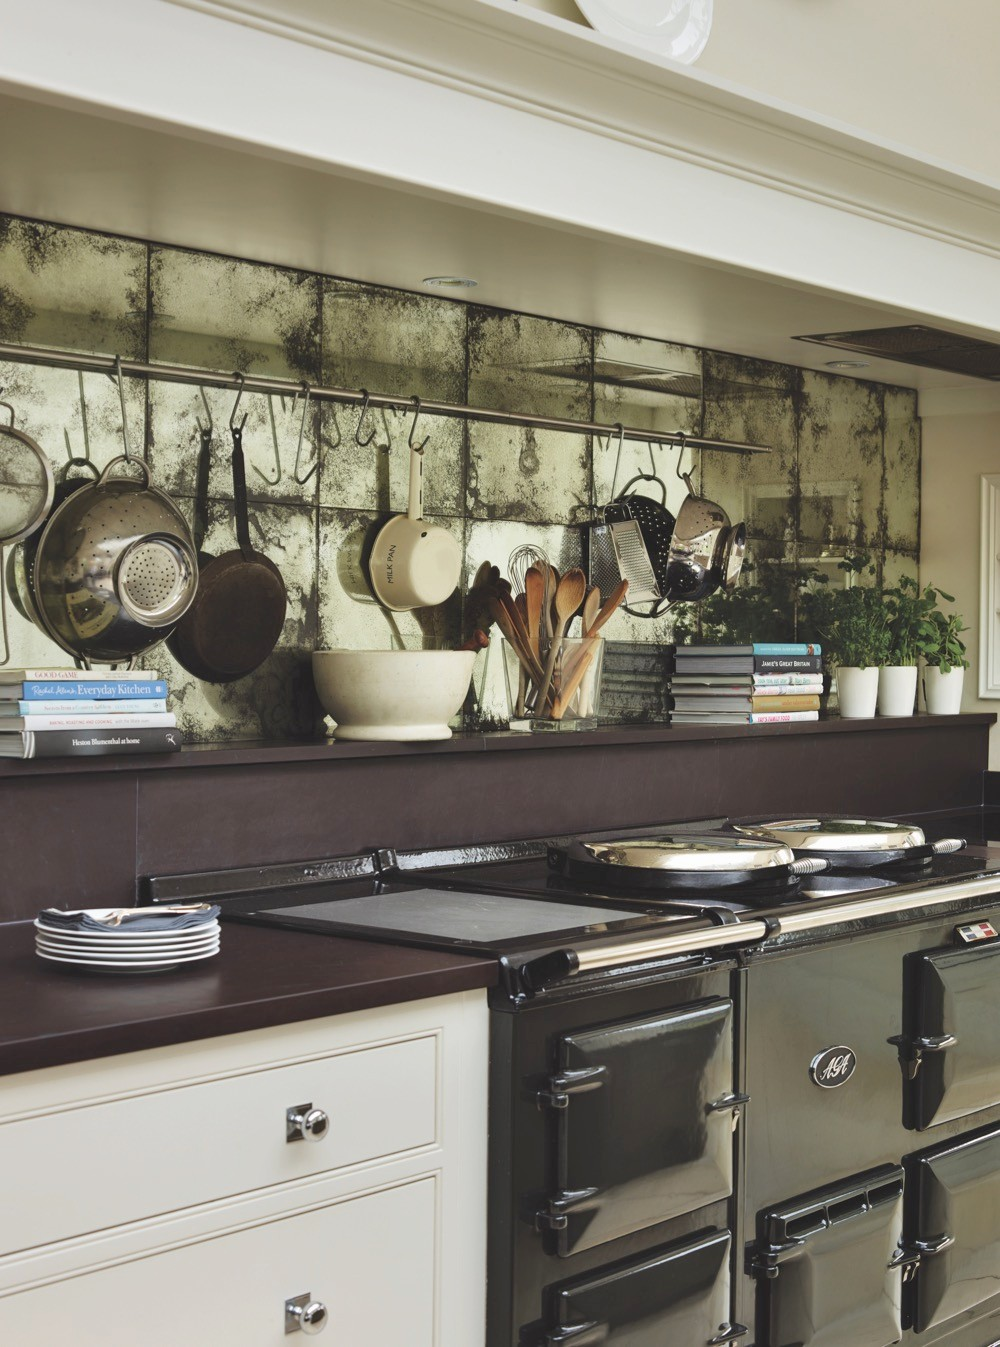 'New Classic' and 'English' kitchen collections by Martin Moore